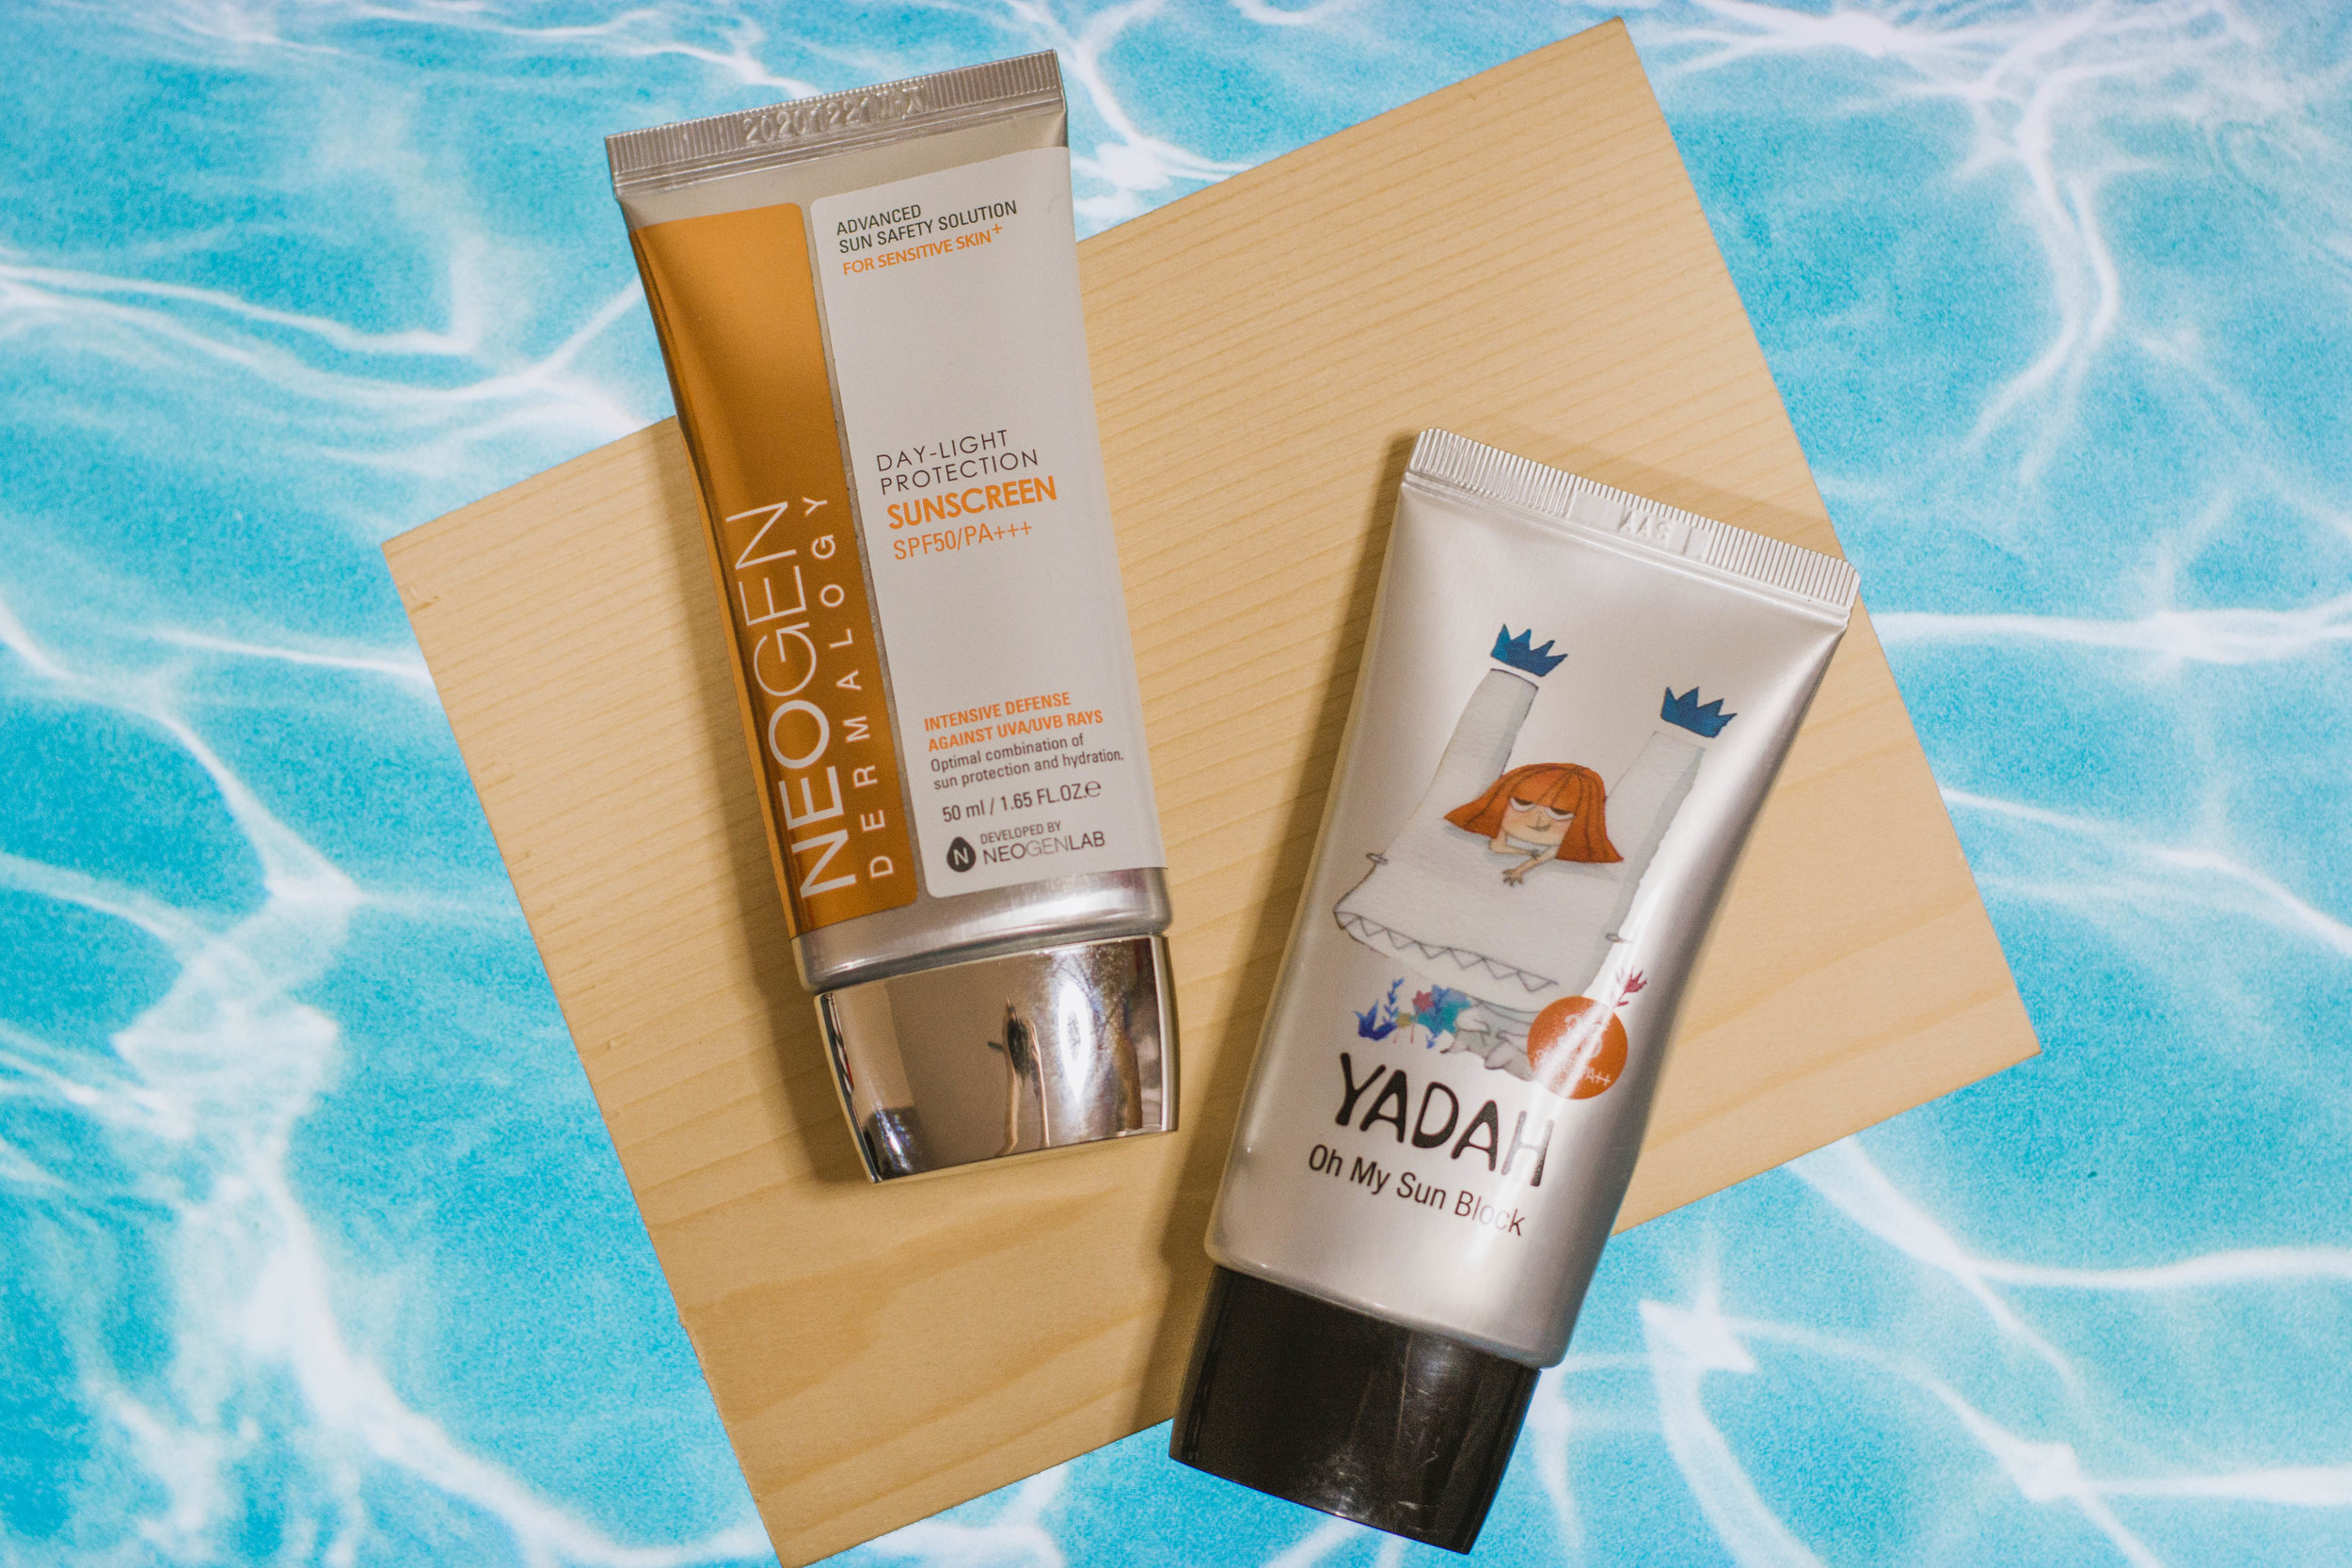 Korean sunscreens: Neogen Day Light Protection Sun Screen SPF50 PA+++ and Yadah Oh My Sun Block SPF35 PA++